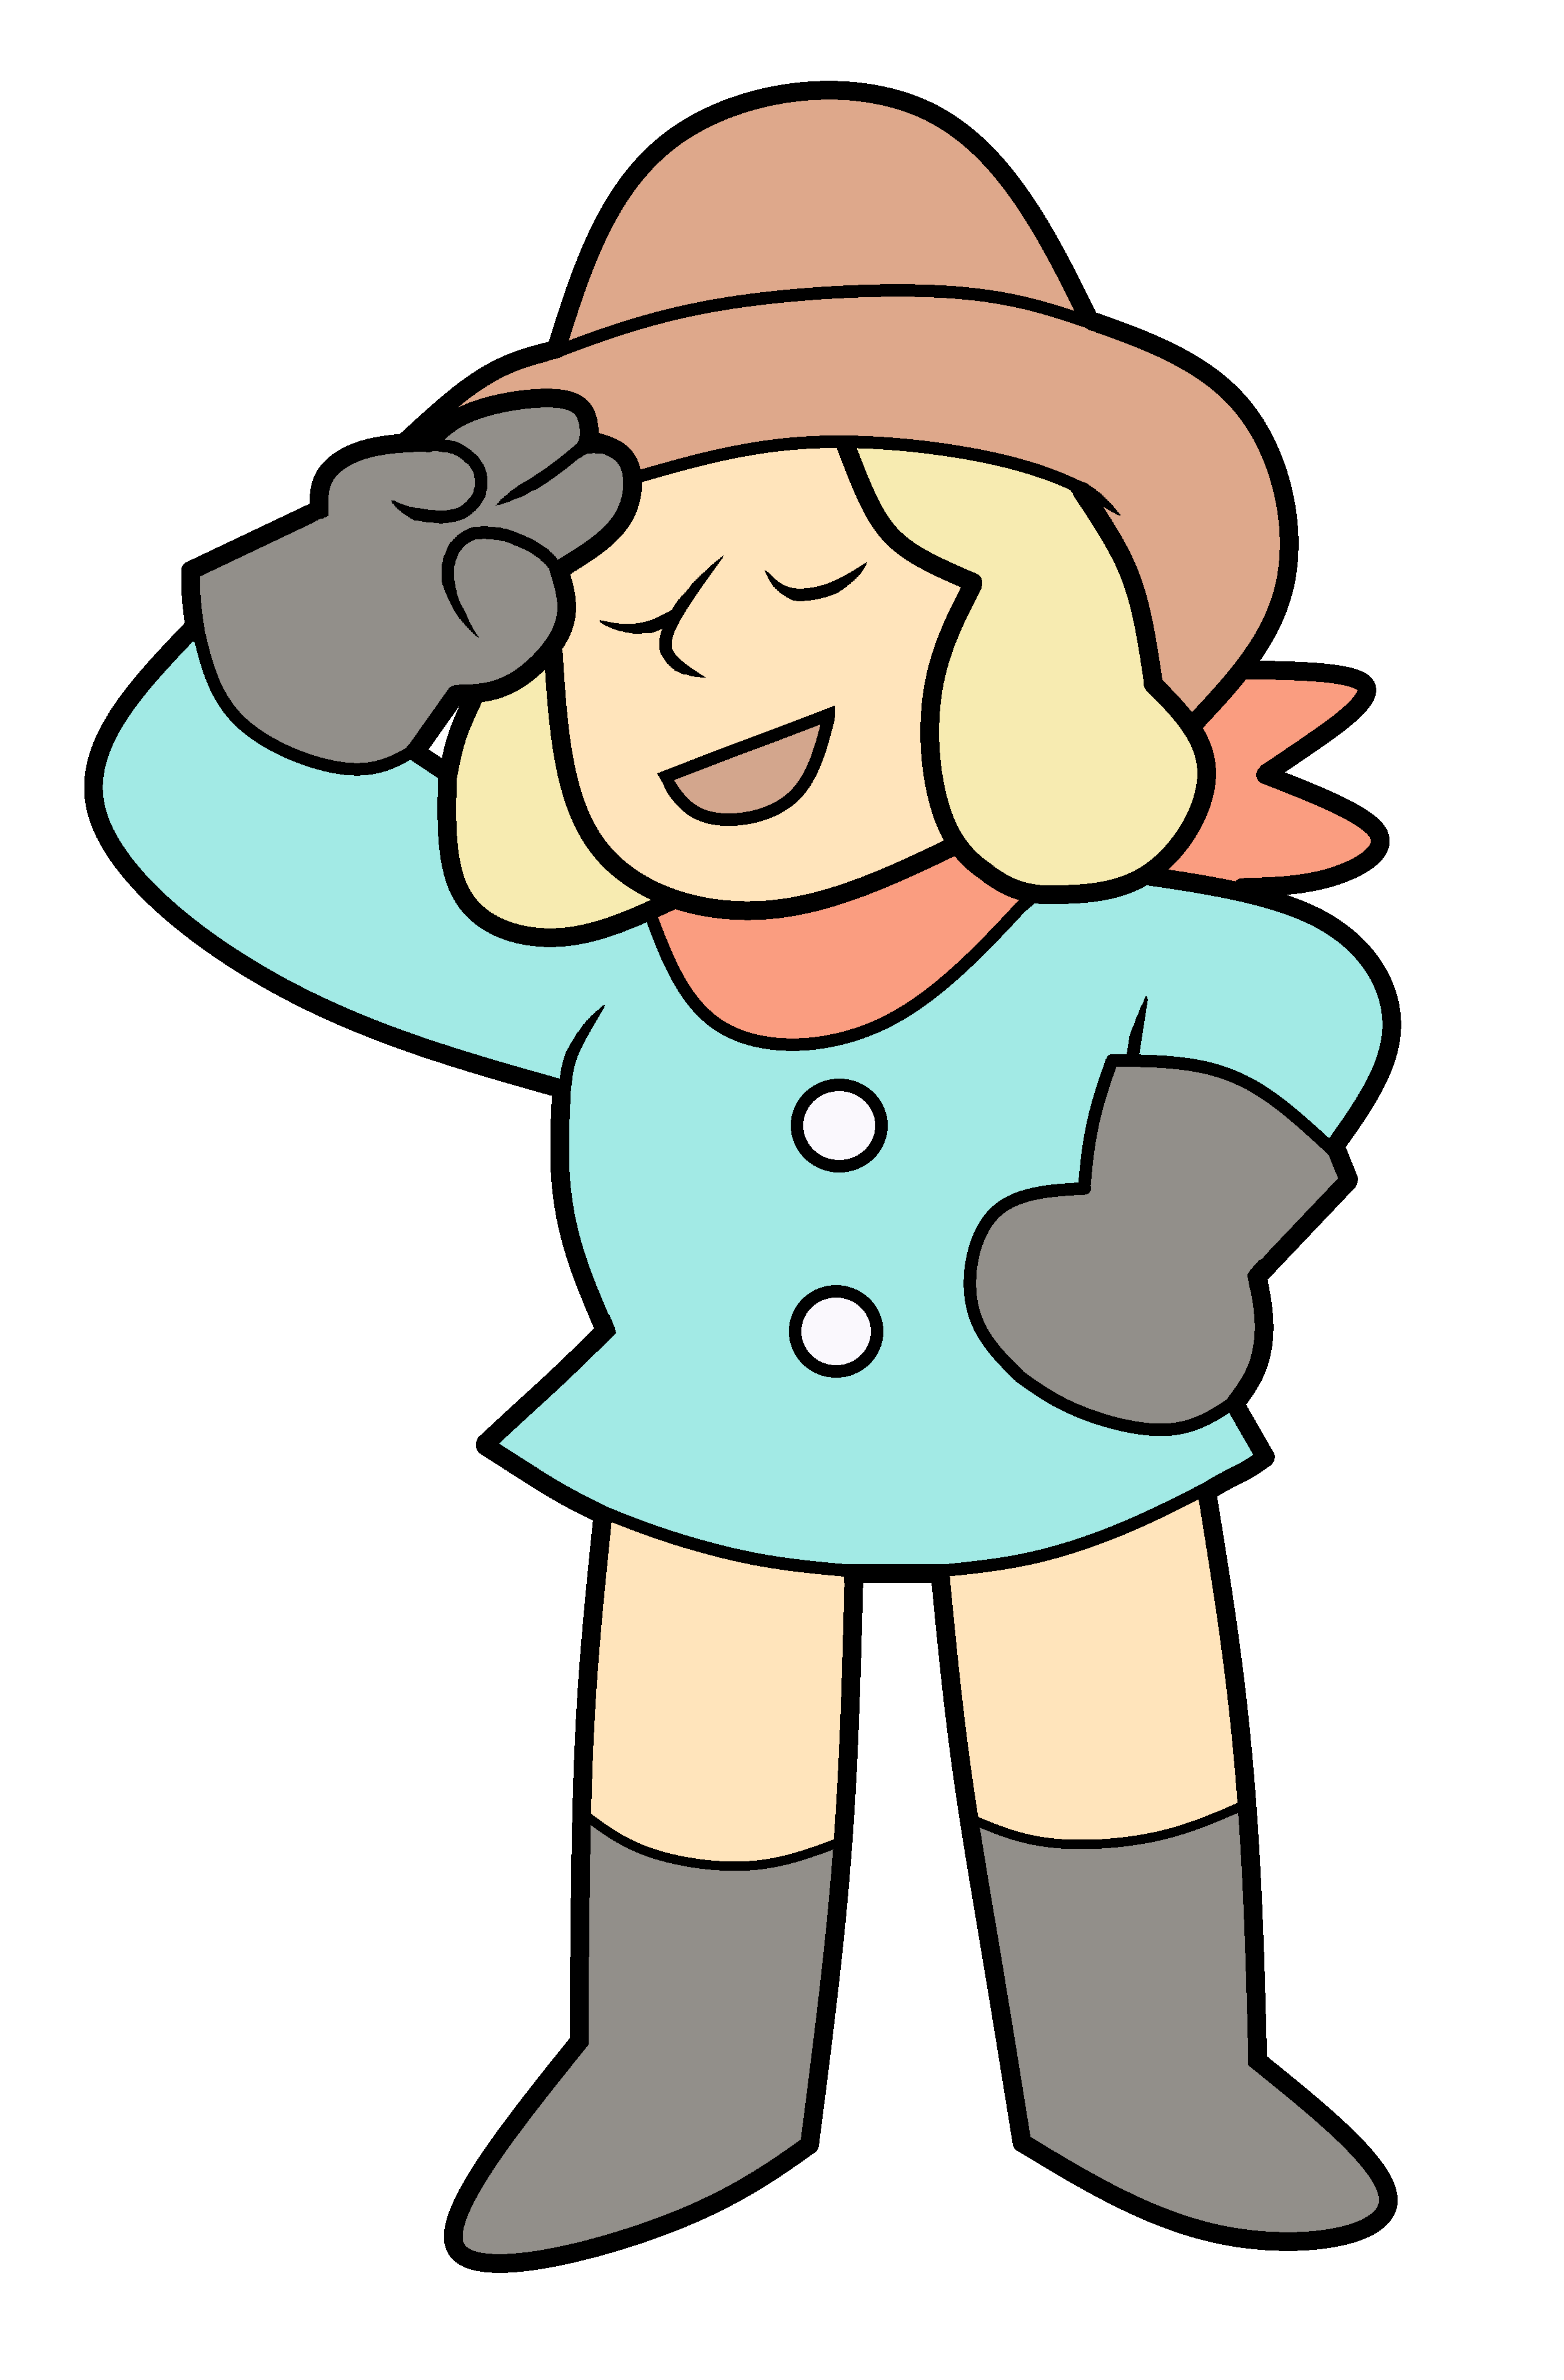 Balled boy holding money clipart jpg royalty free stock Minor Objects/Toys   Steven Universe Wiki   FANDOM powered by Wikia jpg royalty free stock